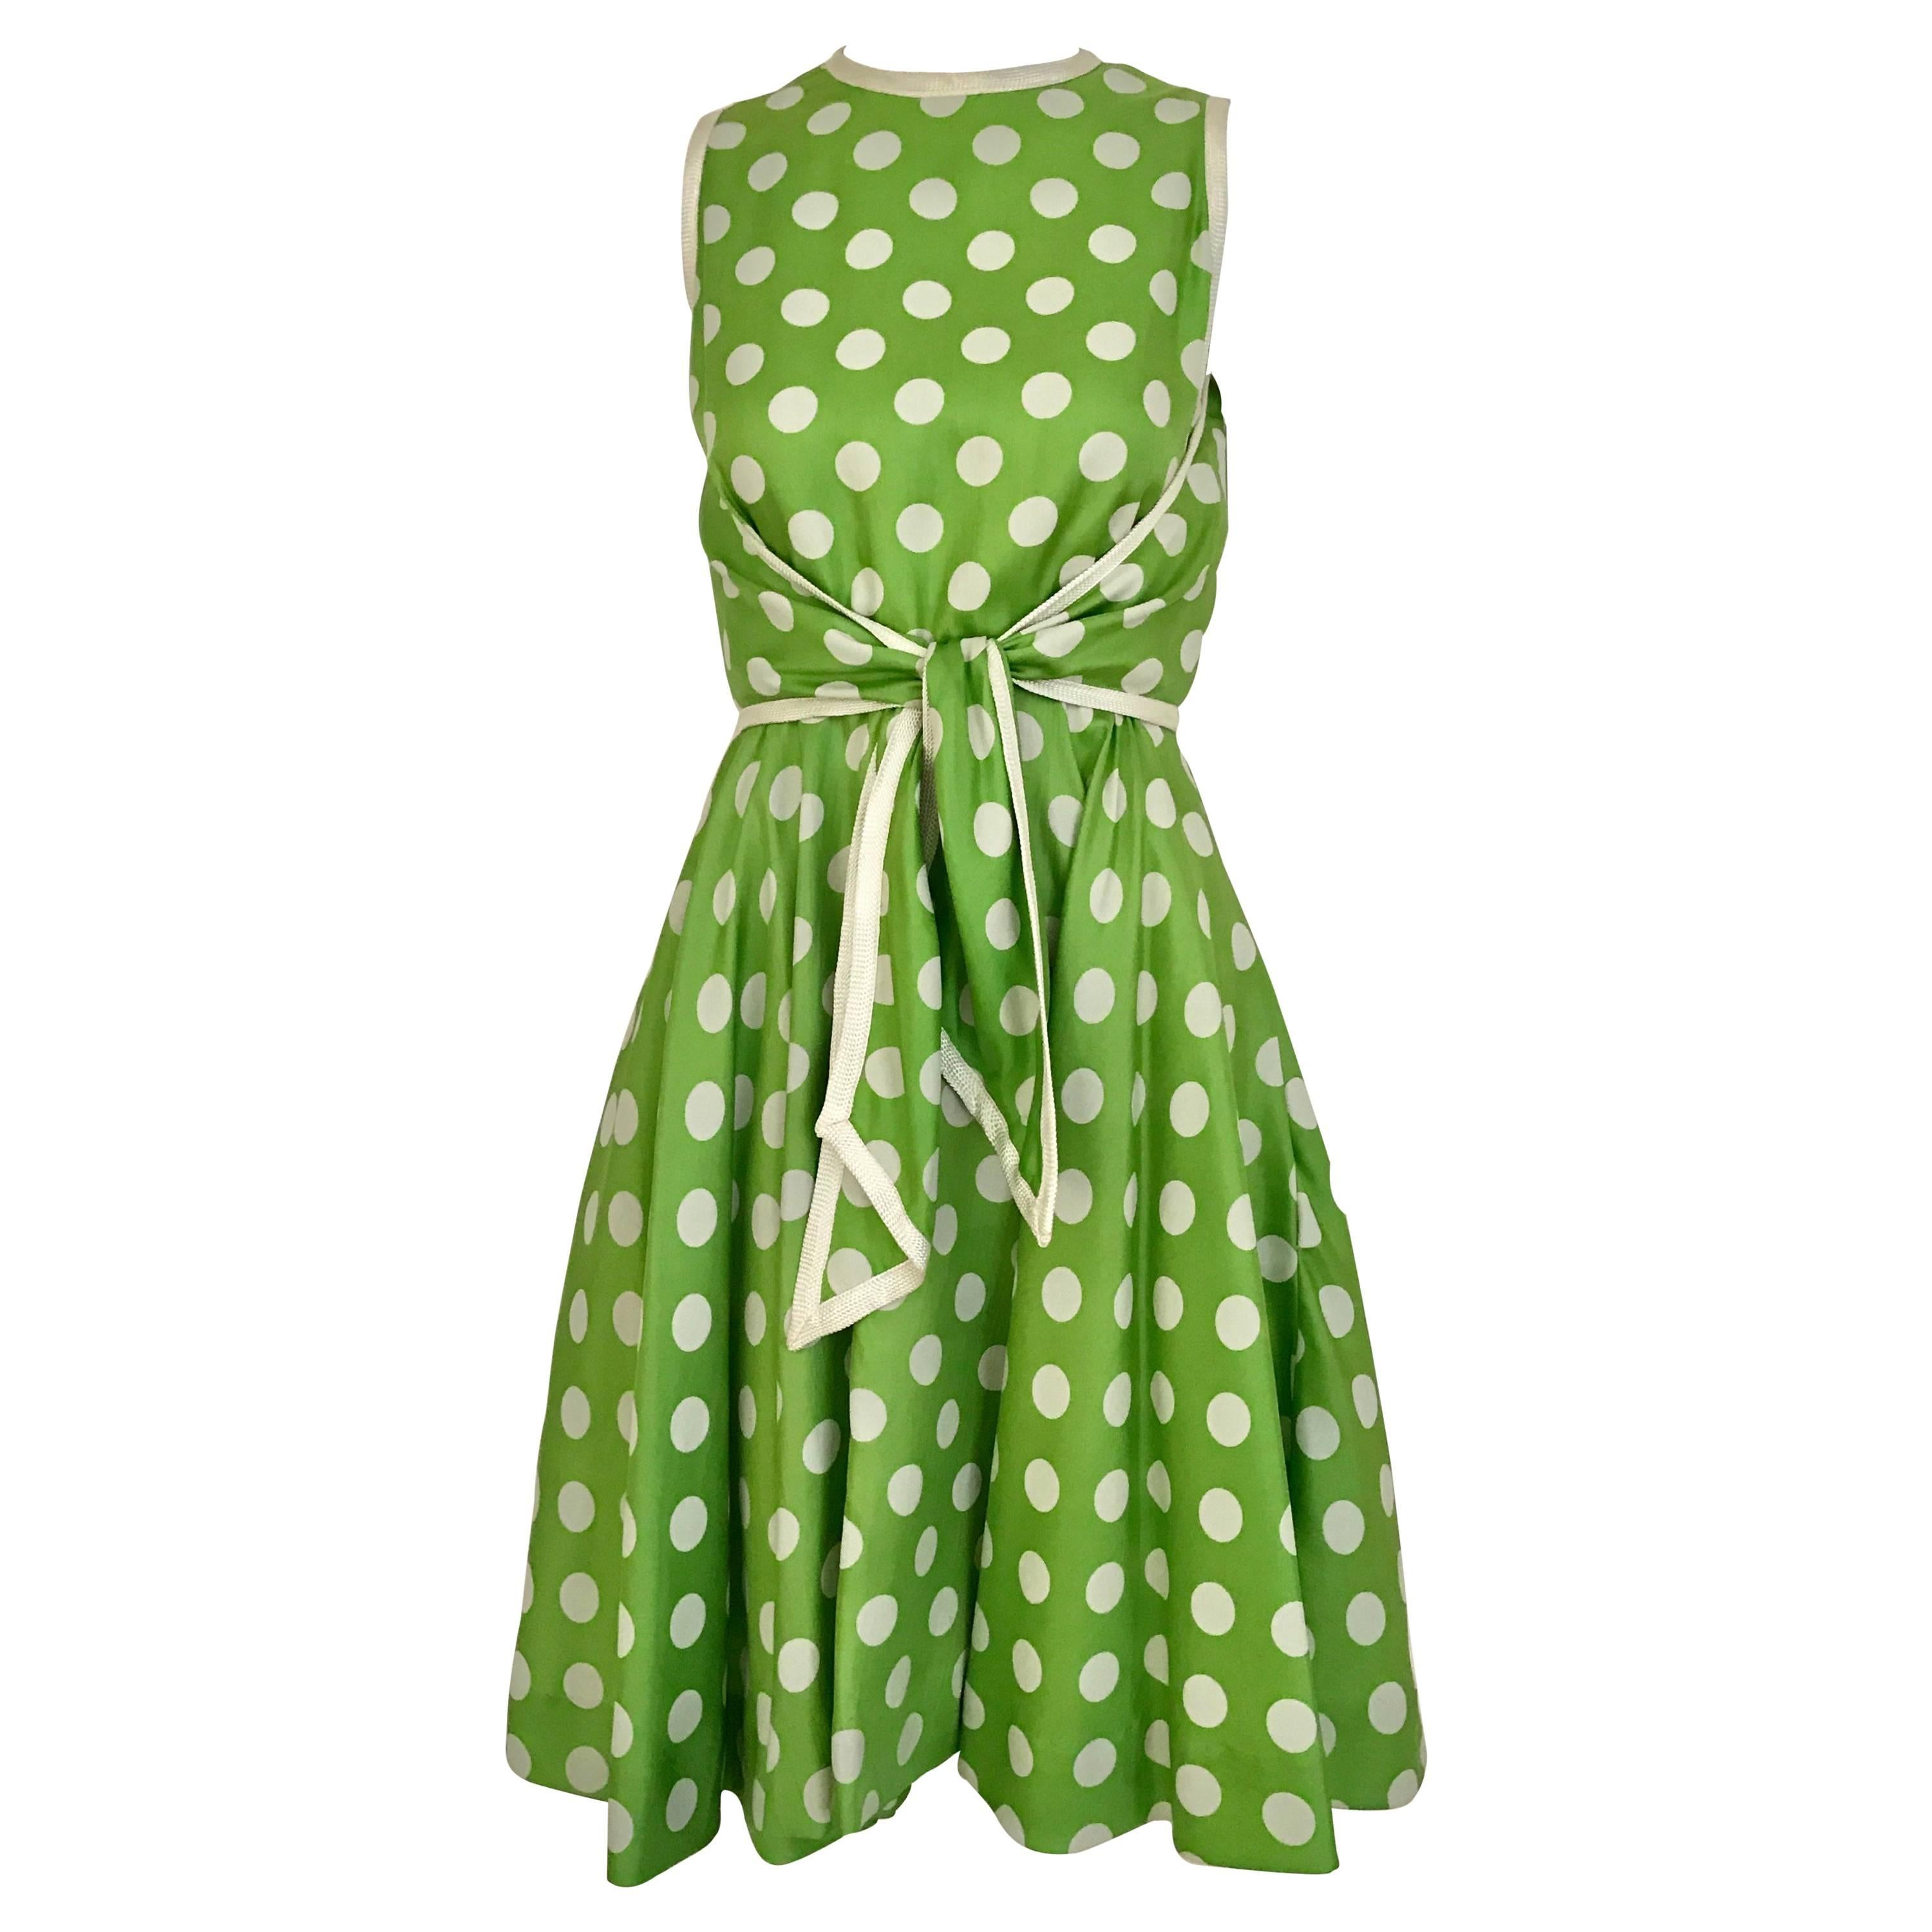 1960s TEAL TRAINA Lime Green and White Polka Dot Sleeveless Dress with Scarf